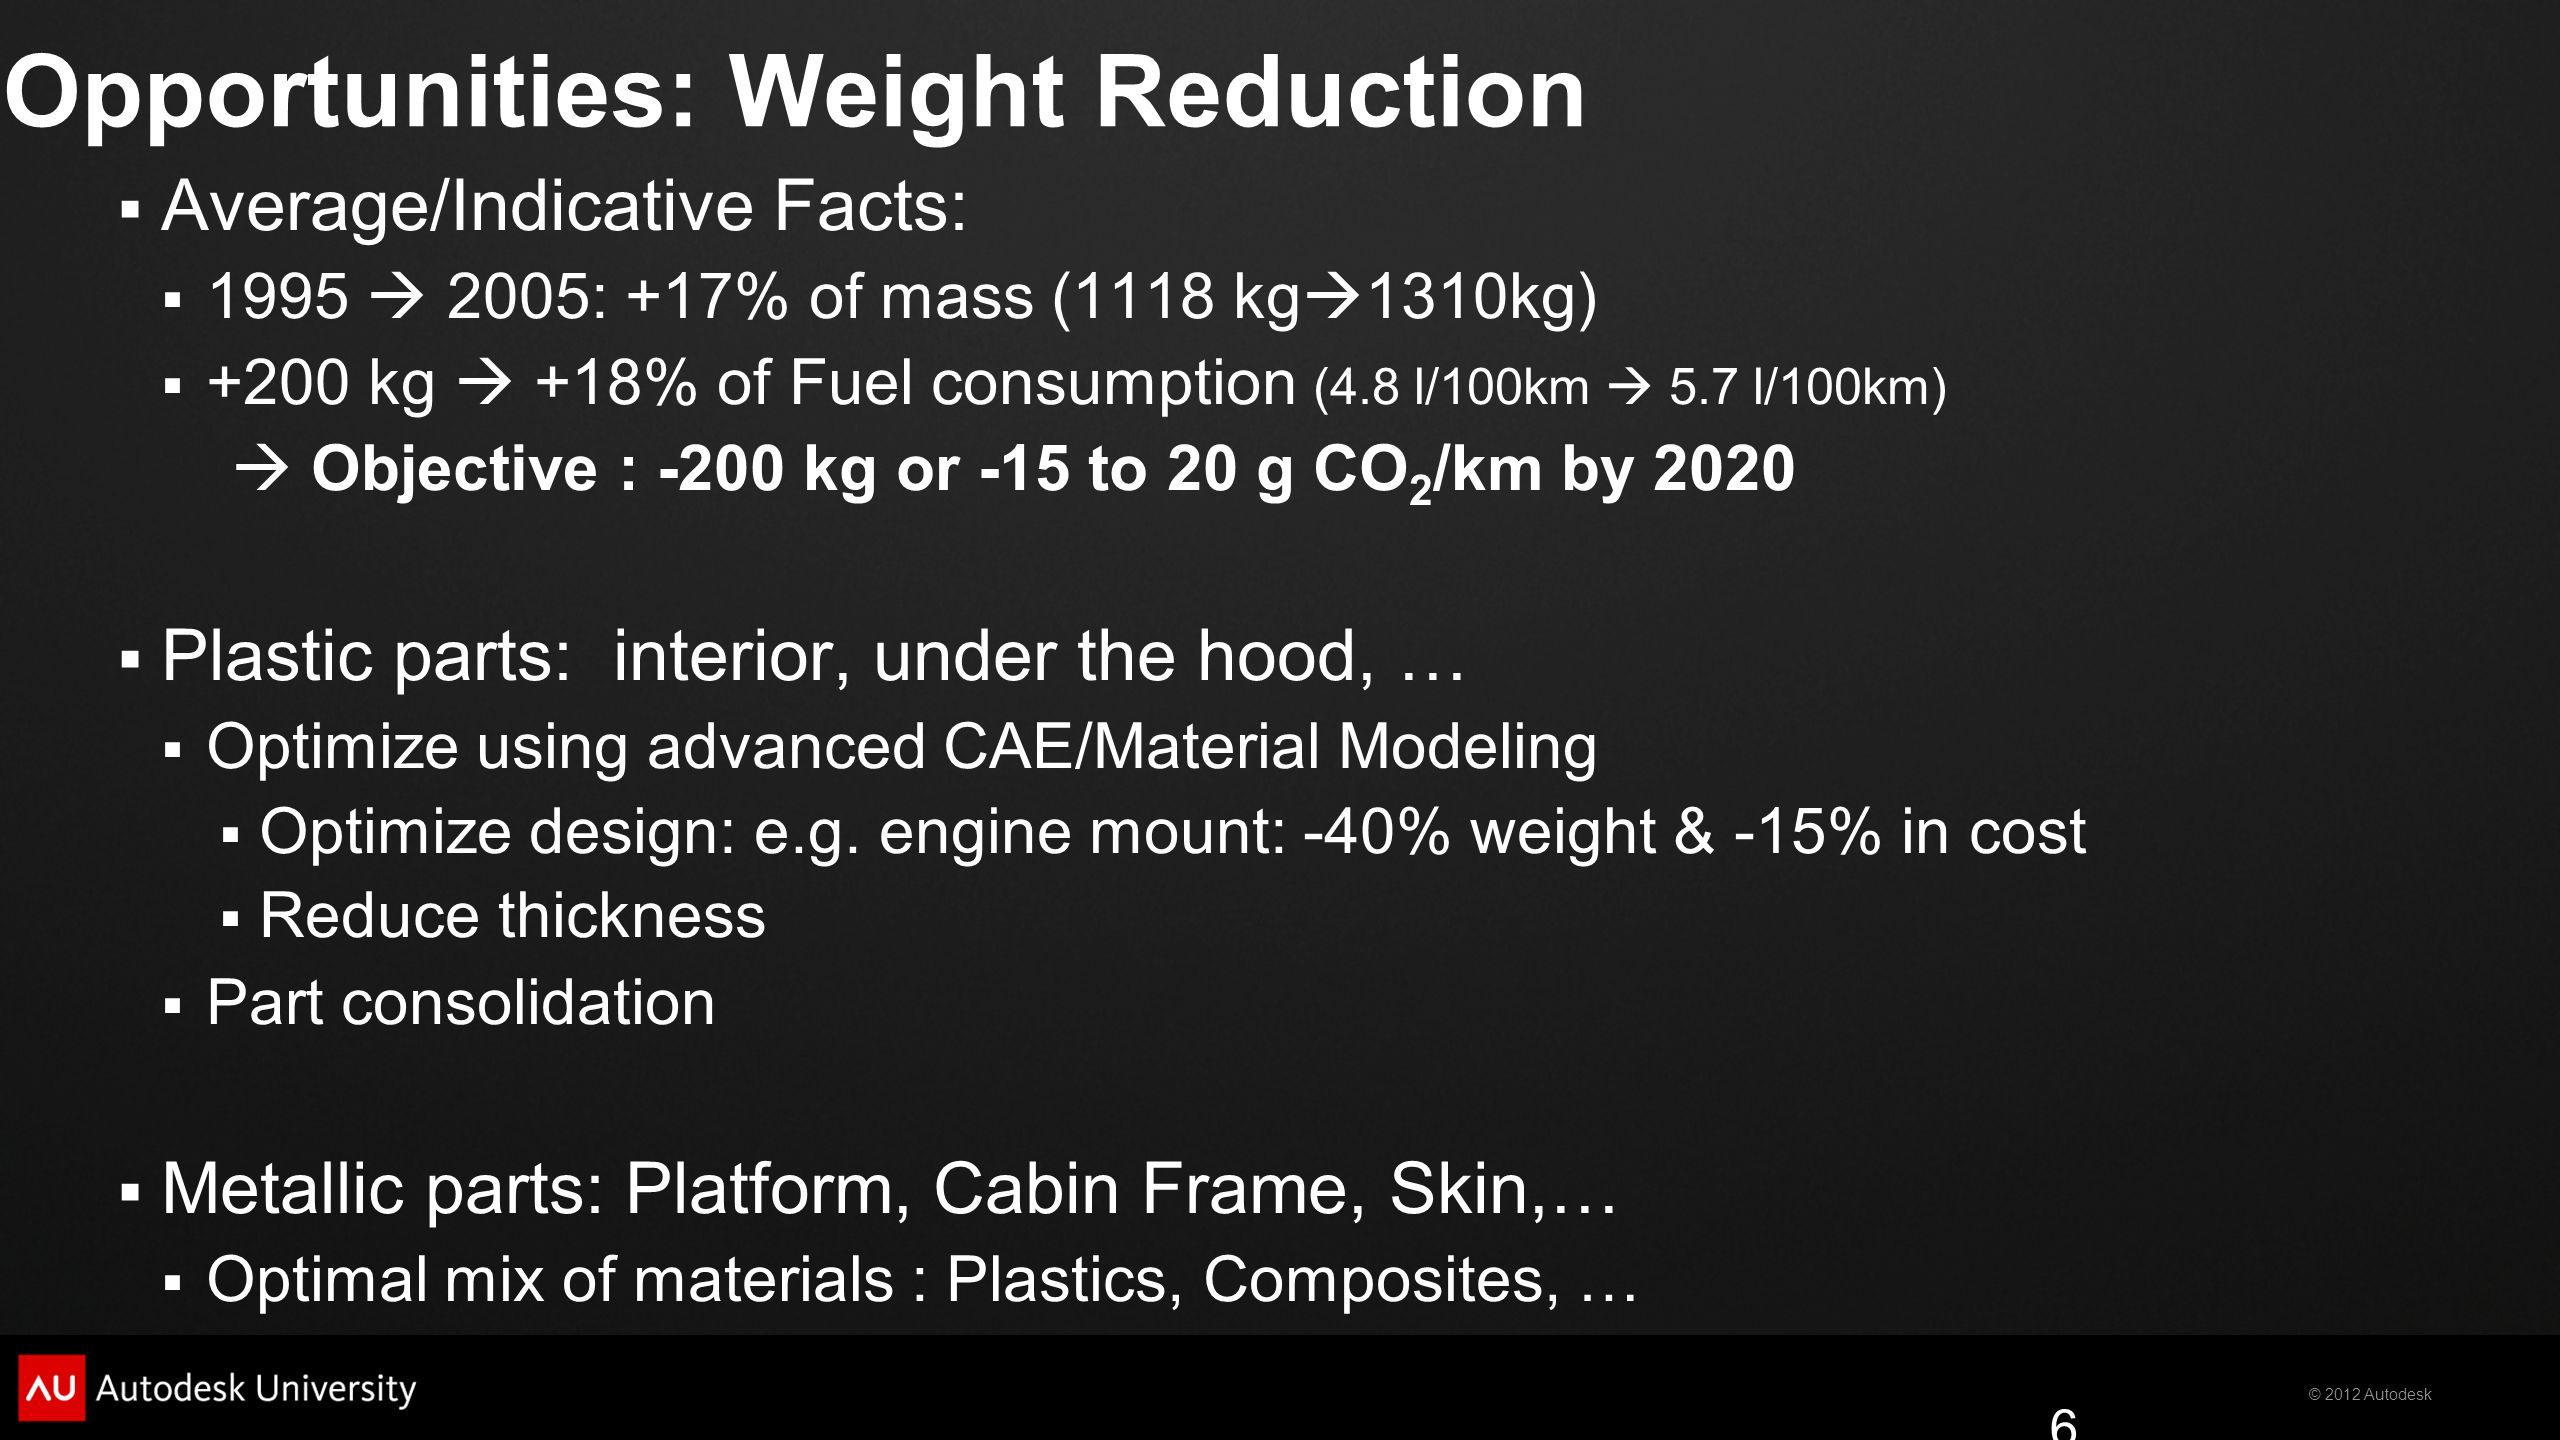 Opportunities: Weight Reduction